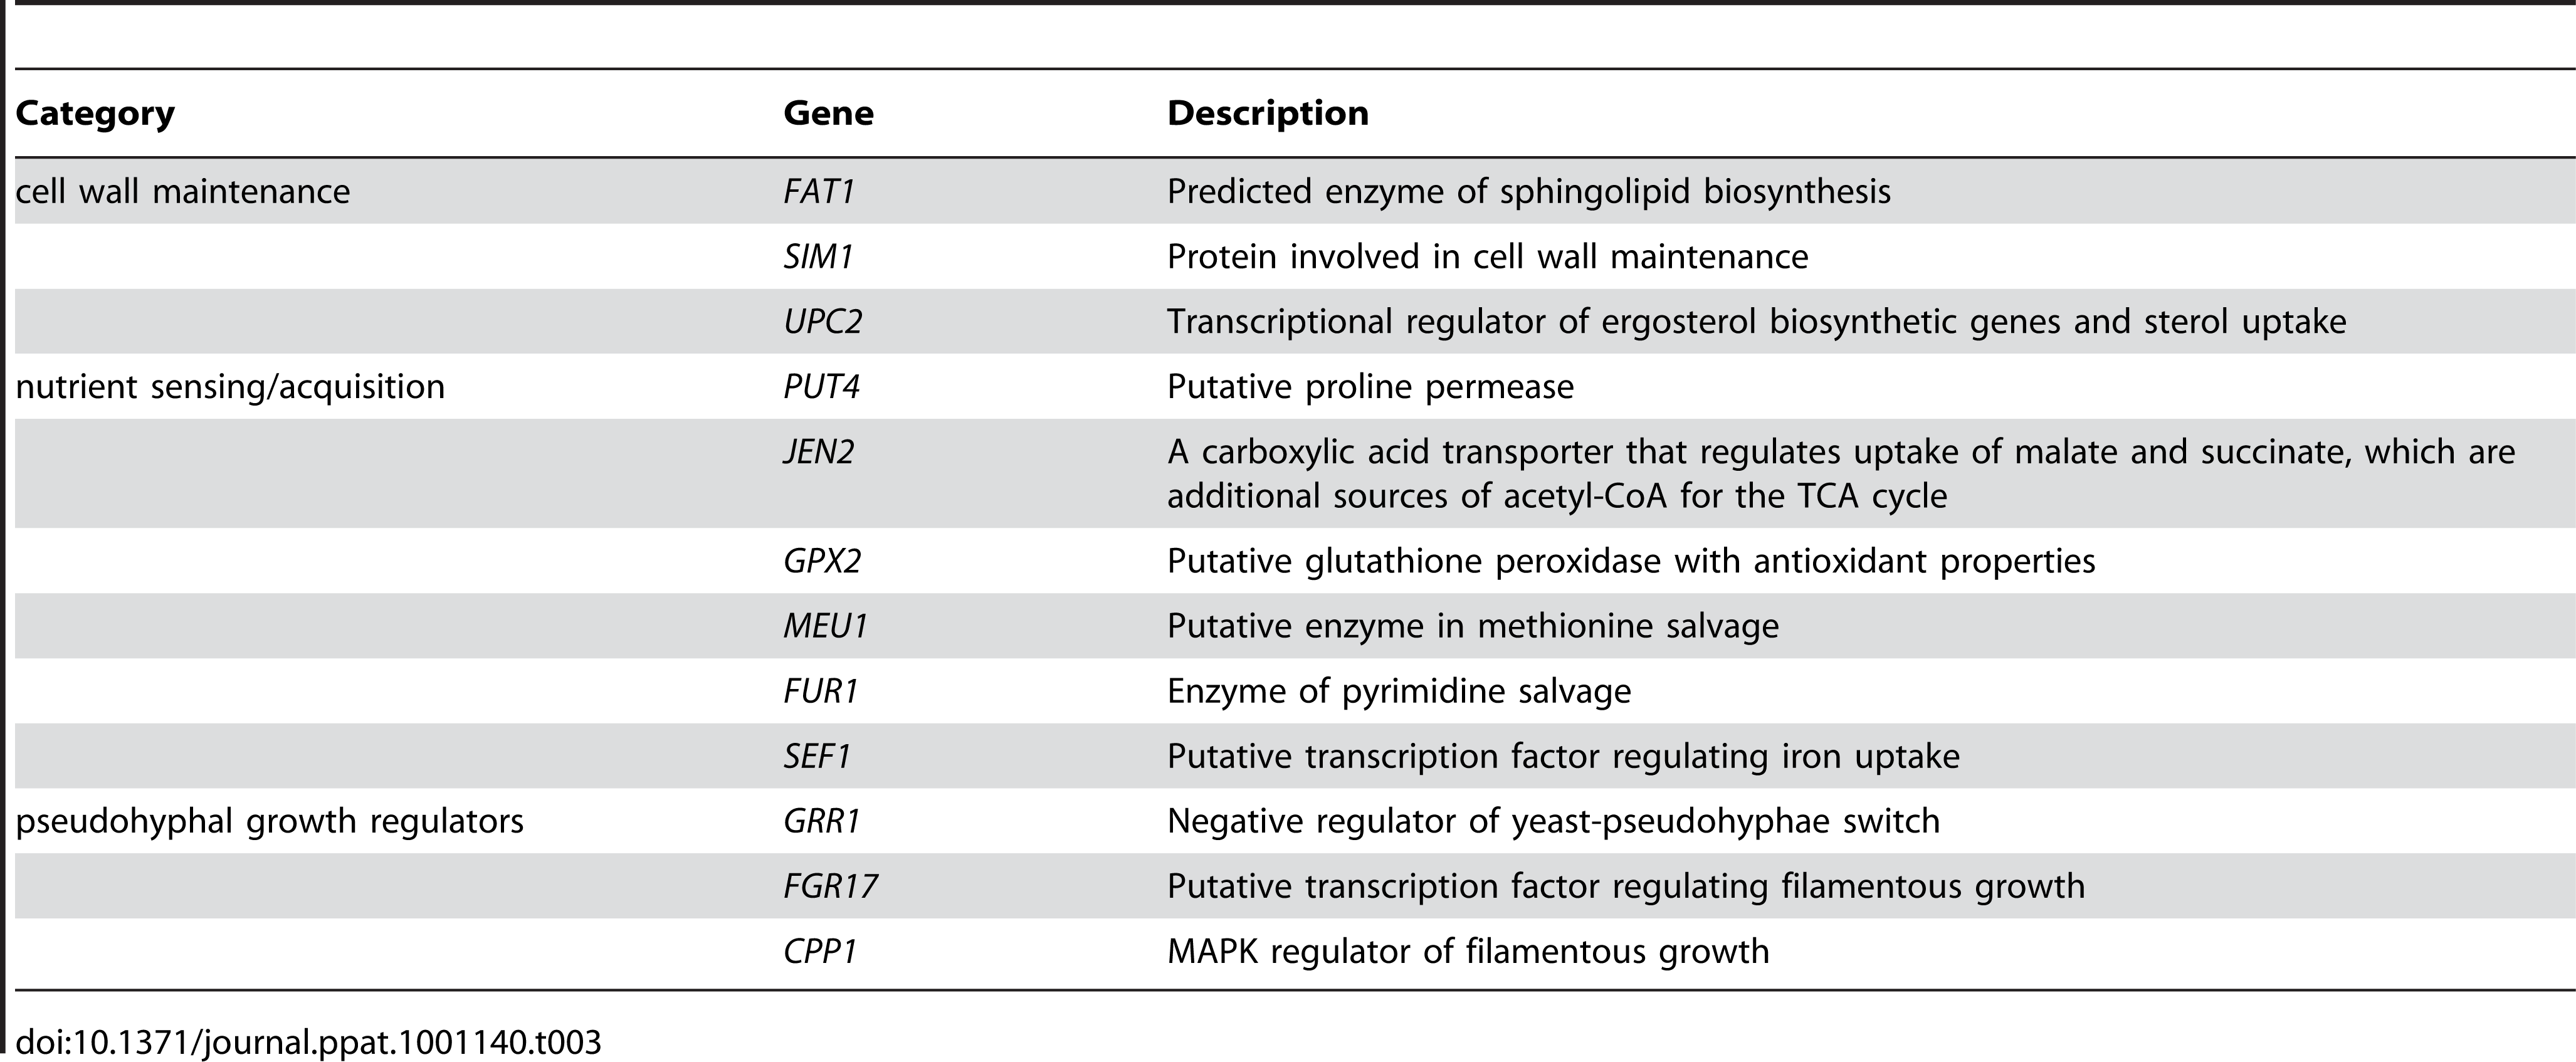 Categories of genes haploinsufficient in reduced-nutrient conditions.